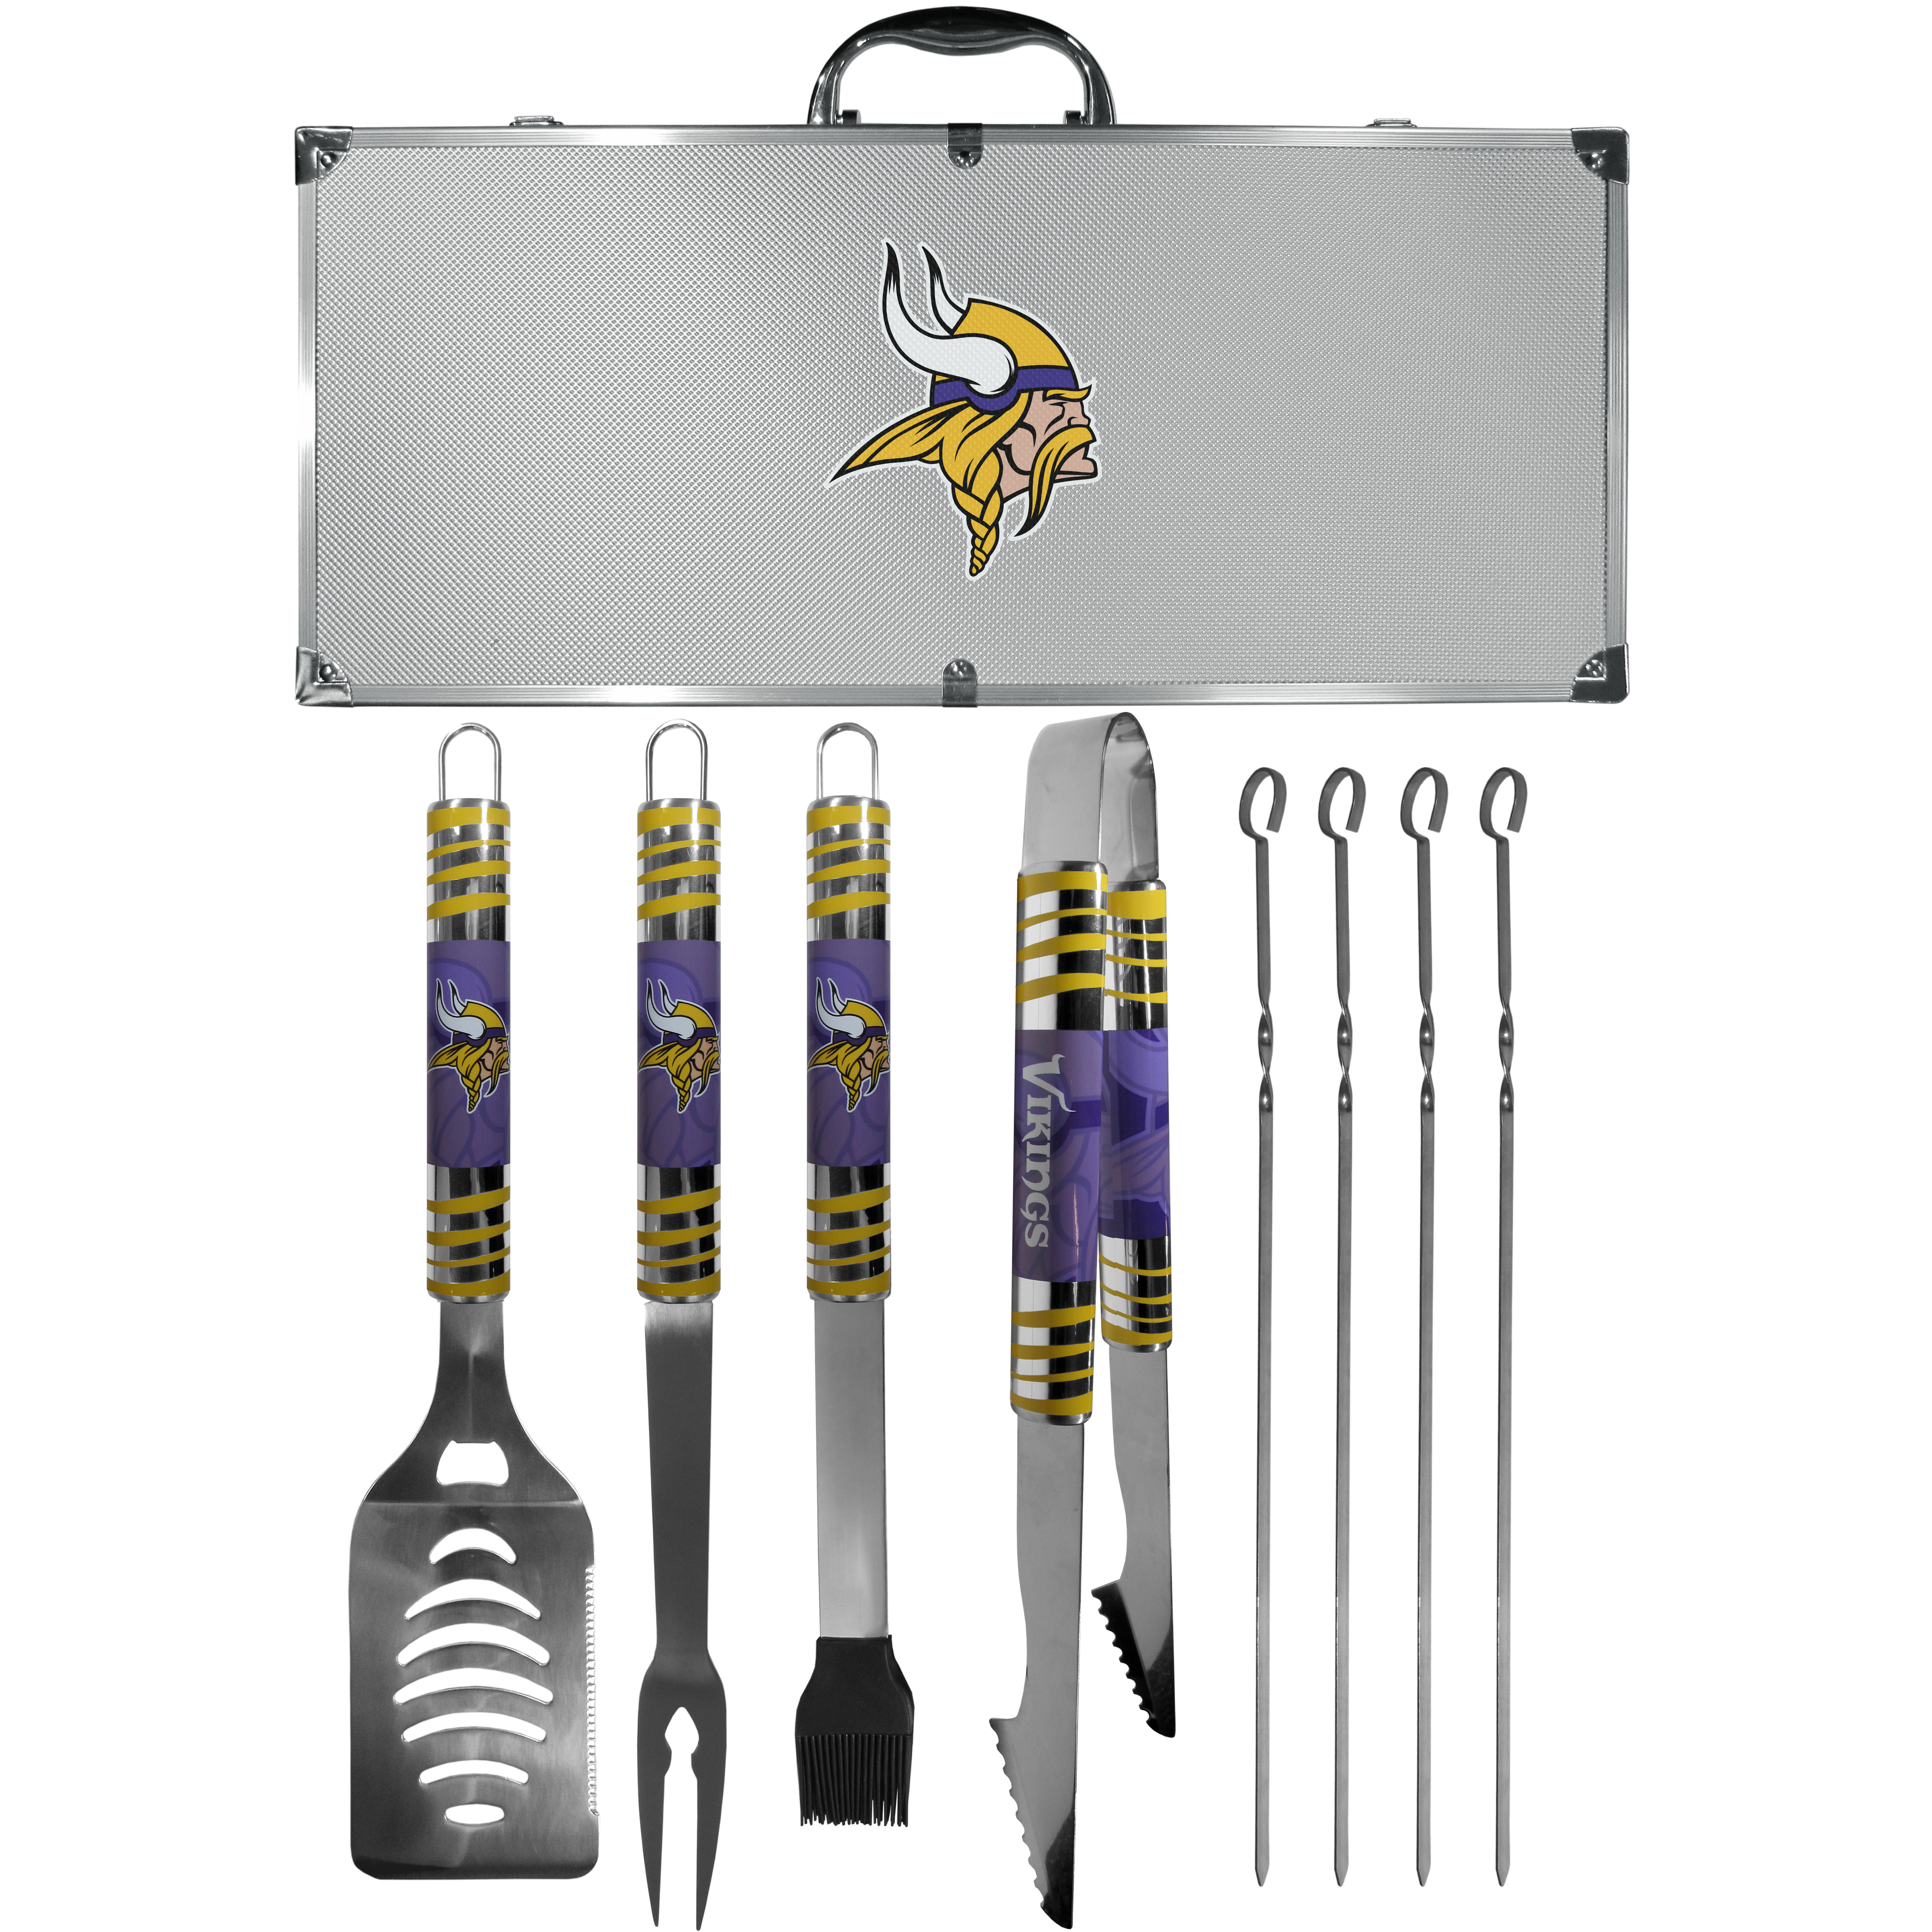 Minnesota Vikings 8 pc Tailgater BBQ Set - This is the ultimate Minnesota Vikings tailgate accessory! The high quality, 420 grade stainless steel tools are durable and well-made enough to make even the pickiest grill master smile. This complete grill accessory kit includes; 4 skewers, spatula with bottle opener and serrated knife edge, basting brush, tongs and a fork. The 18 inch metal carrying case is perfect for great outdoor use making grilling an ease while camping, tailgating or while having a game day party on your patio. The tools are 17 inches long and feature vivid team graphics. The metal case features a large team emblem with exceptional detail. This high-end men's gift is sure to be a hit as a present on Father's Day or Christmas.